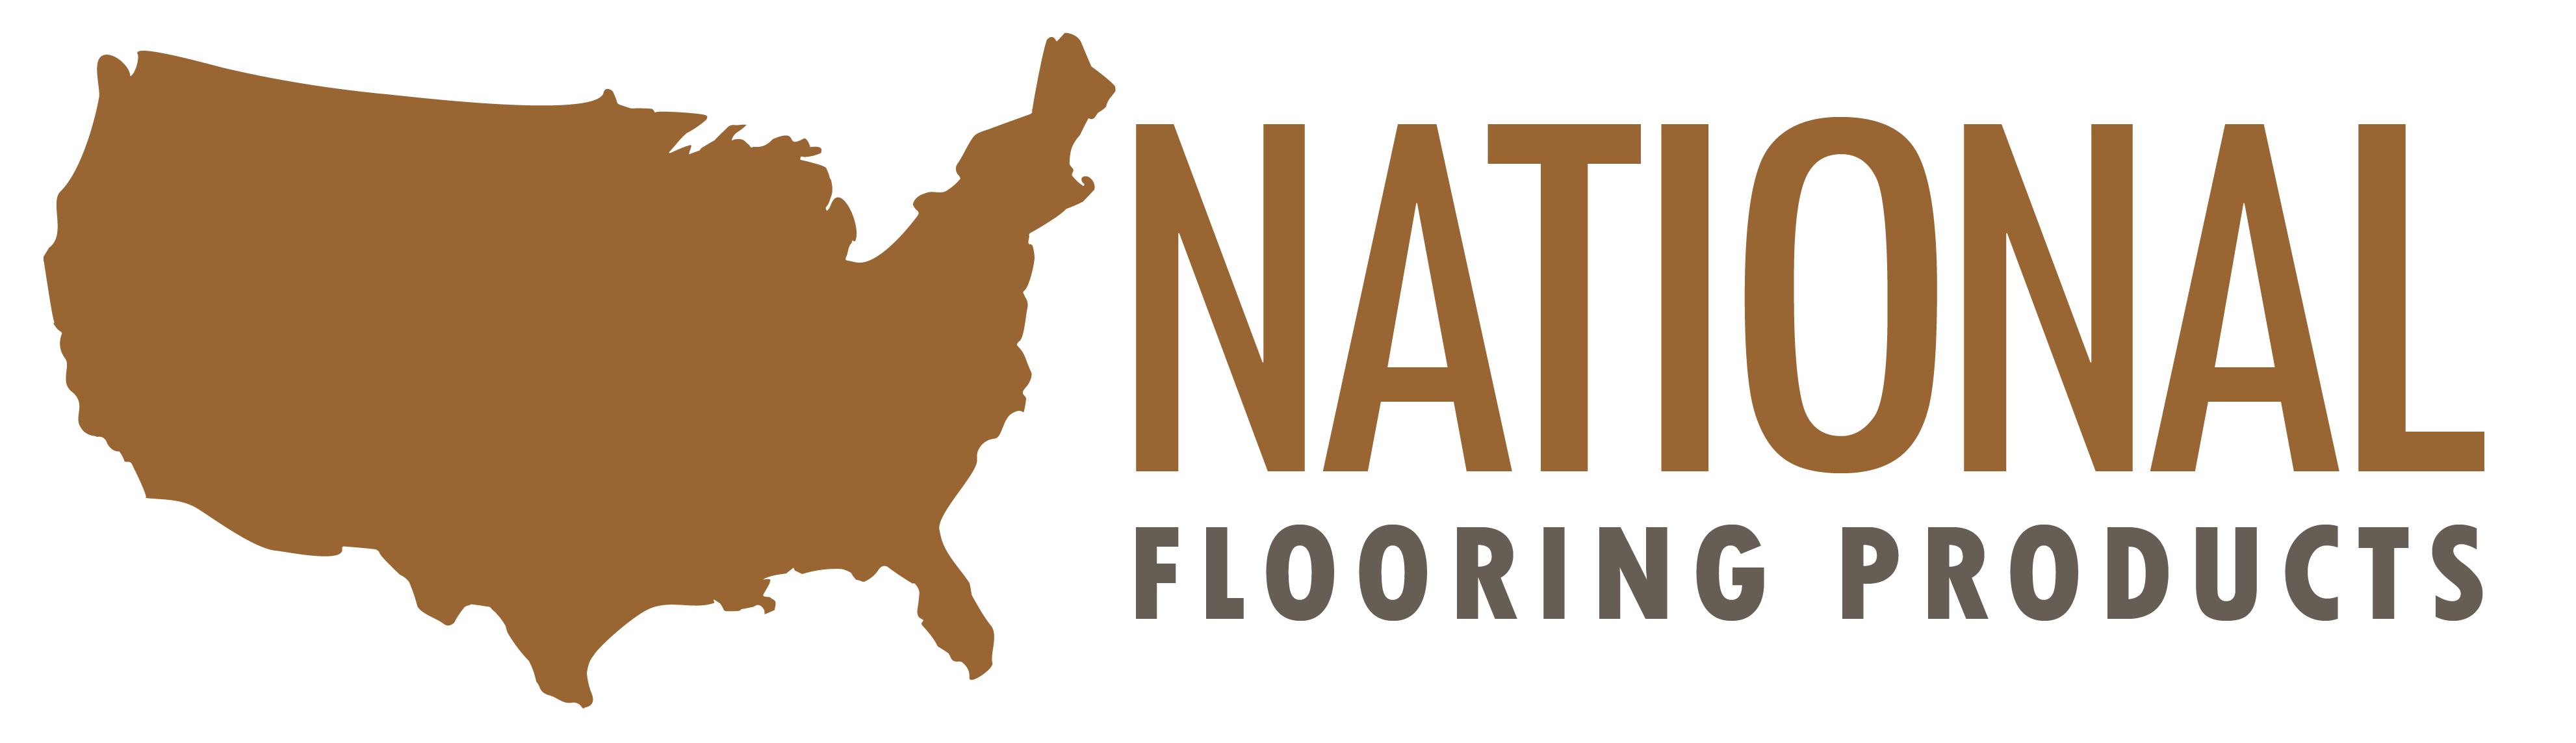 Beautiful National Flooring Products